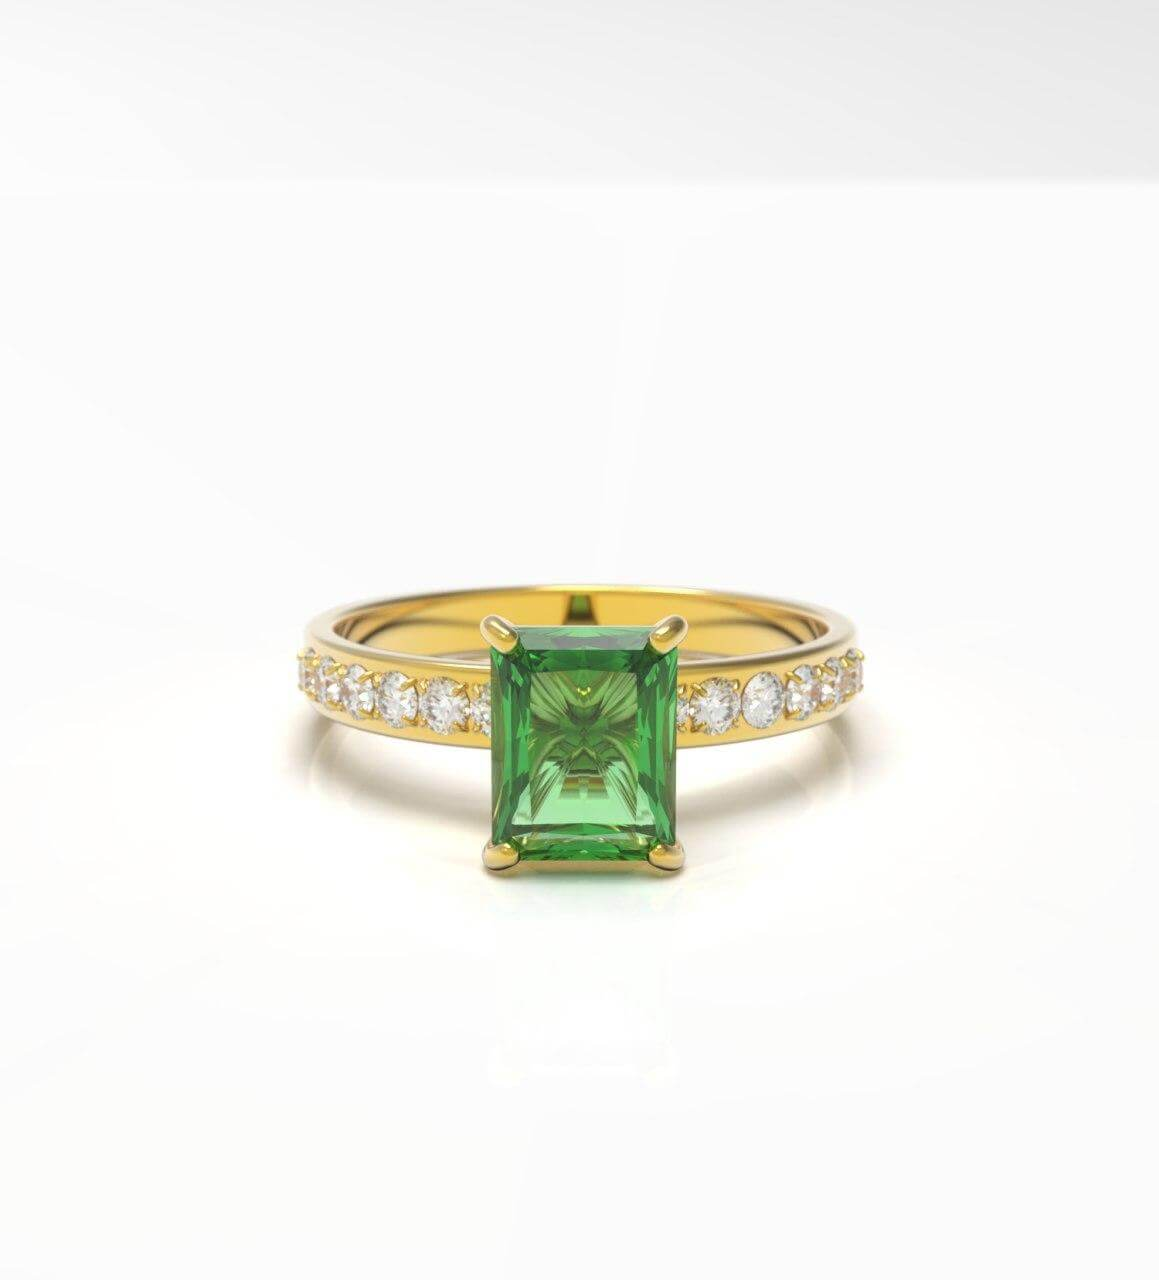 Square stone engagement ring